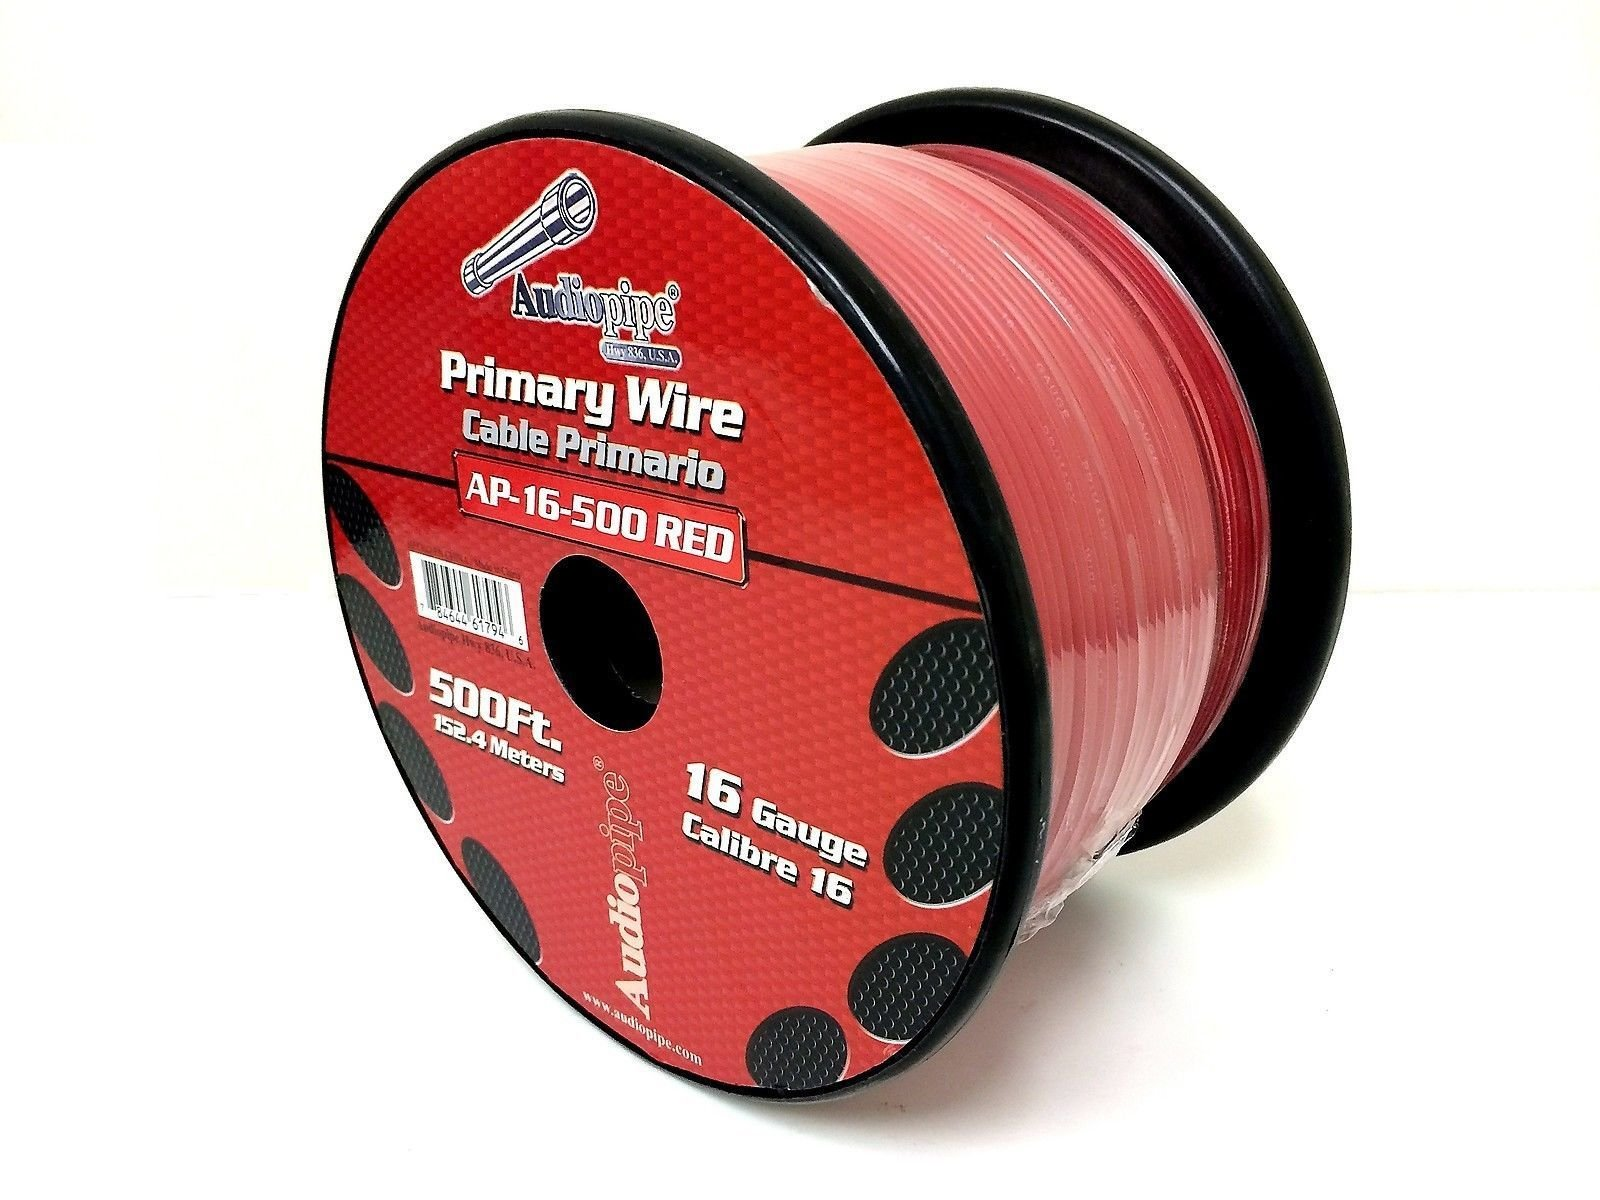 3 Rolls of 16 Gauge - 500' each Audiopipe Car Audio Home Primary Remote Wire by Audiopipe (Image #6)